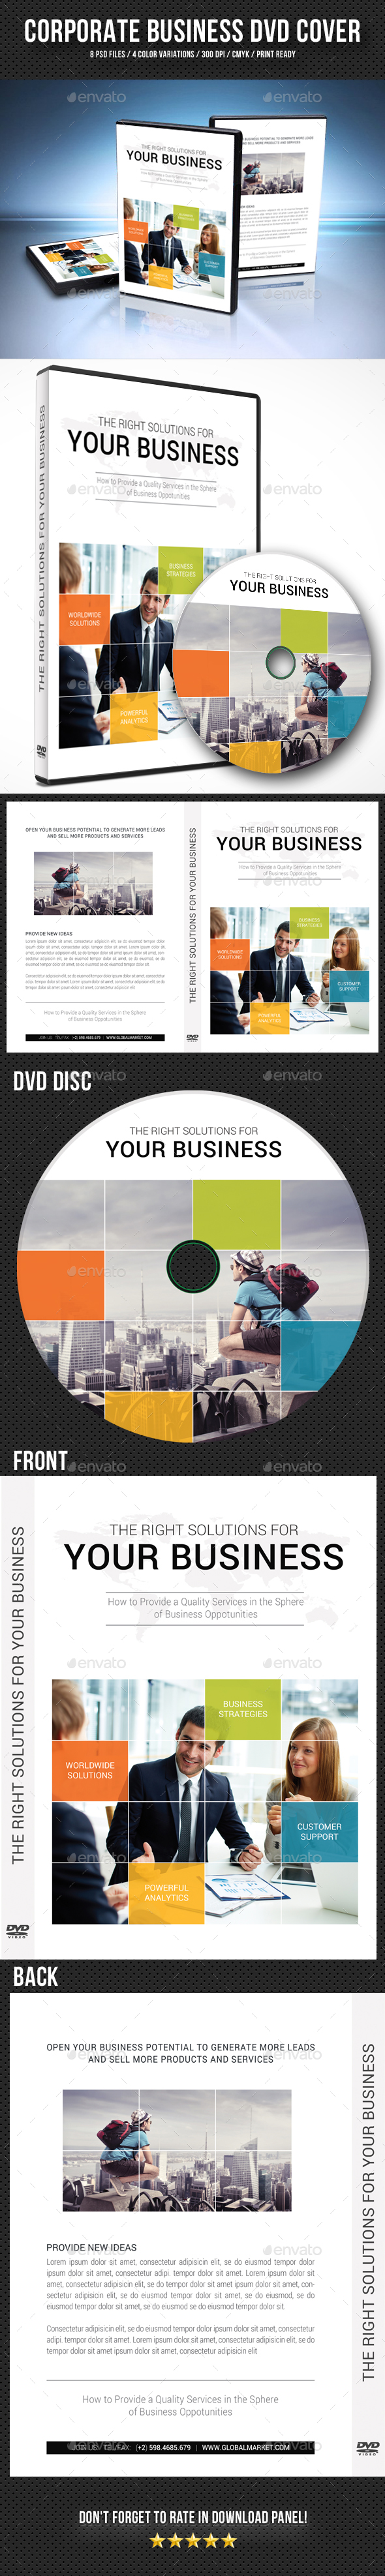 Corporate Business DVD Cover Template V11 - CD & DVD Artwork Print Templates